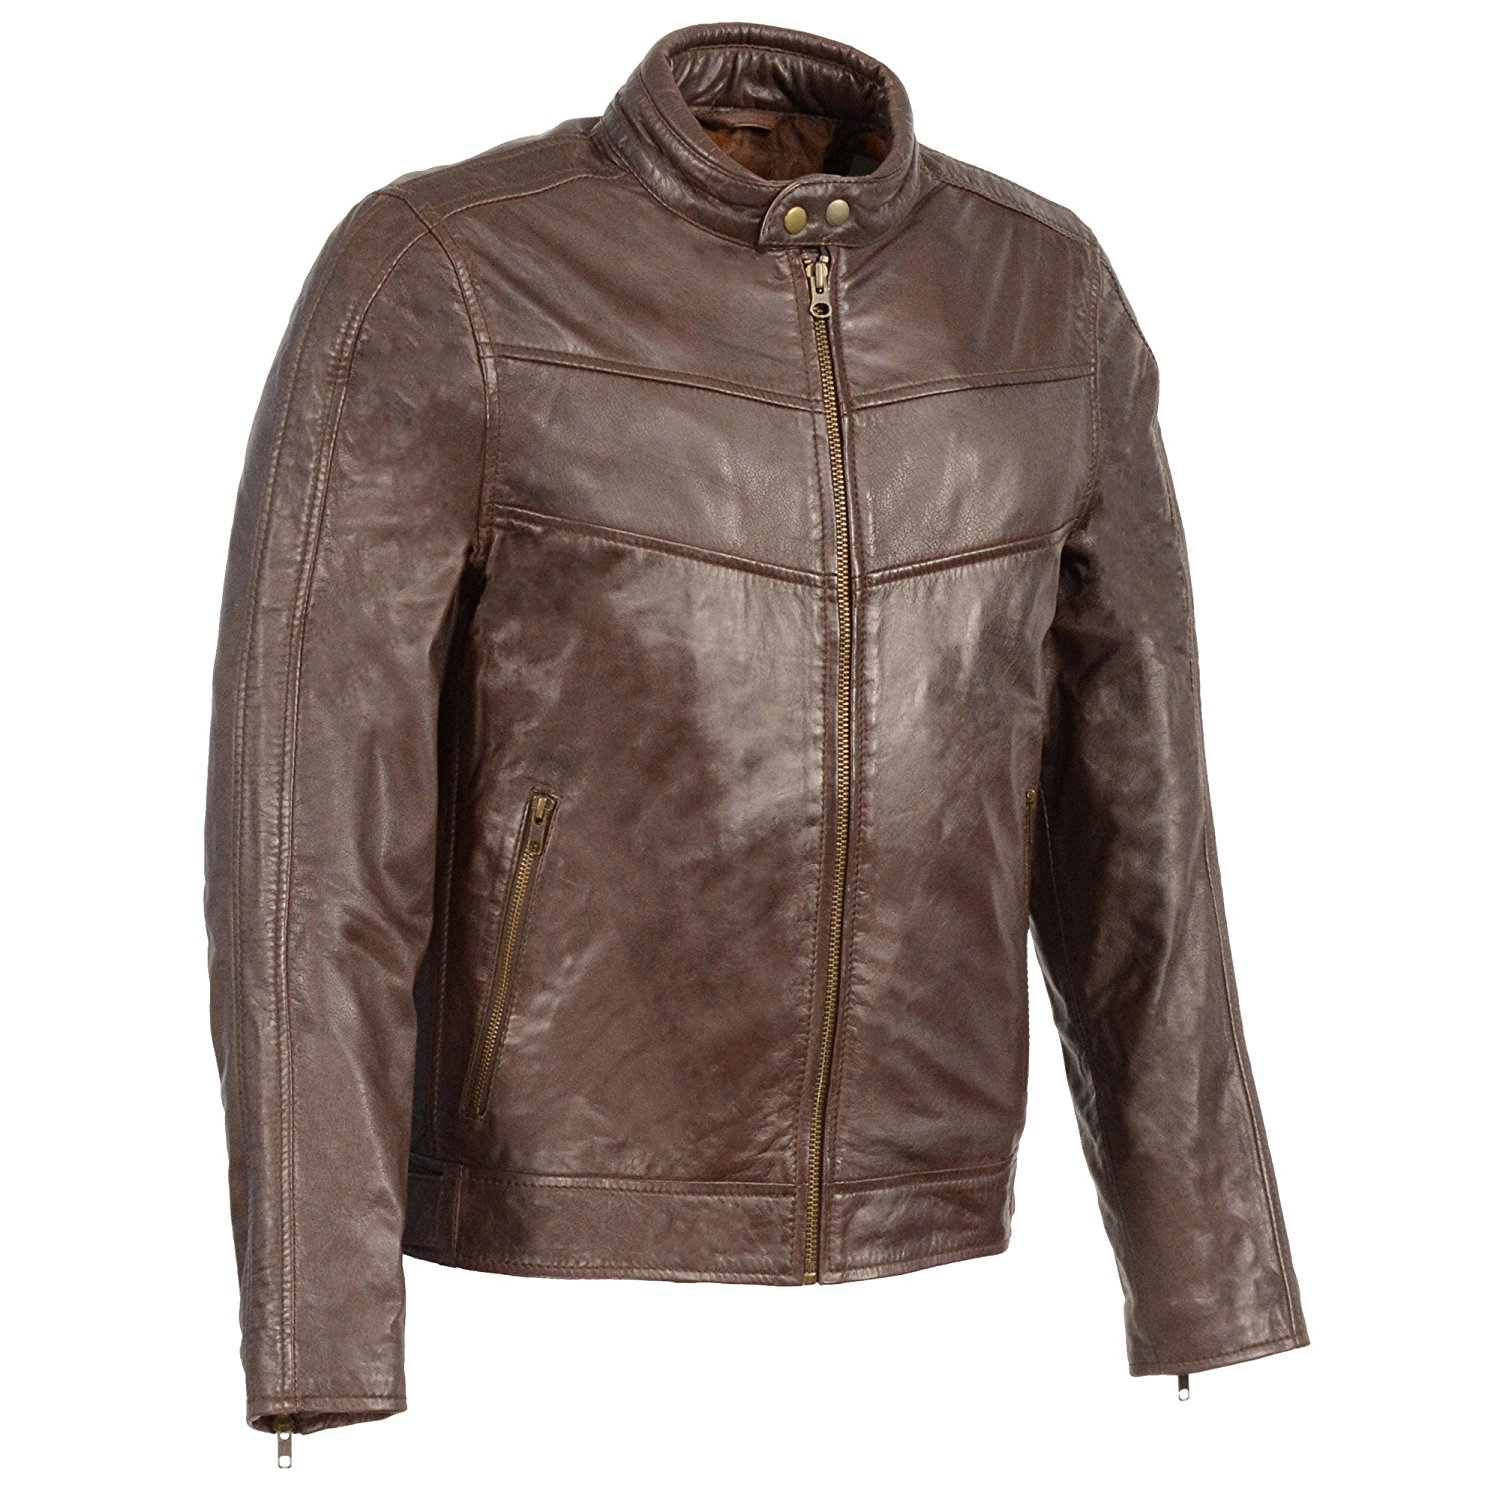 Milwaukee Leather Men's Stand Up Collar Leather Jacket (Broken Brown, X- Large), 1 Pack